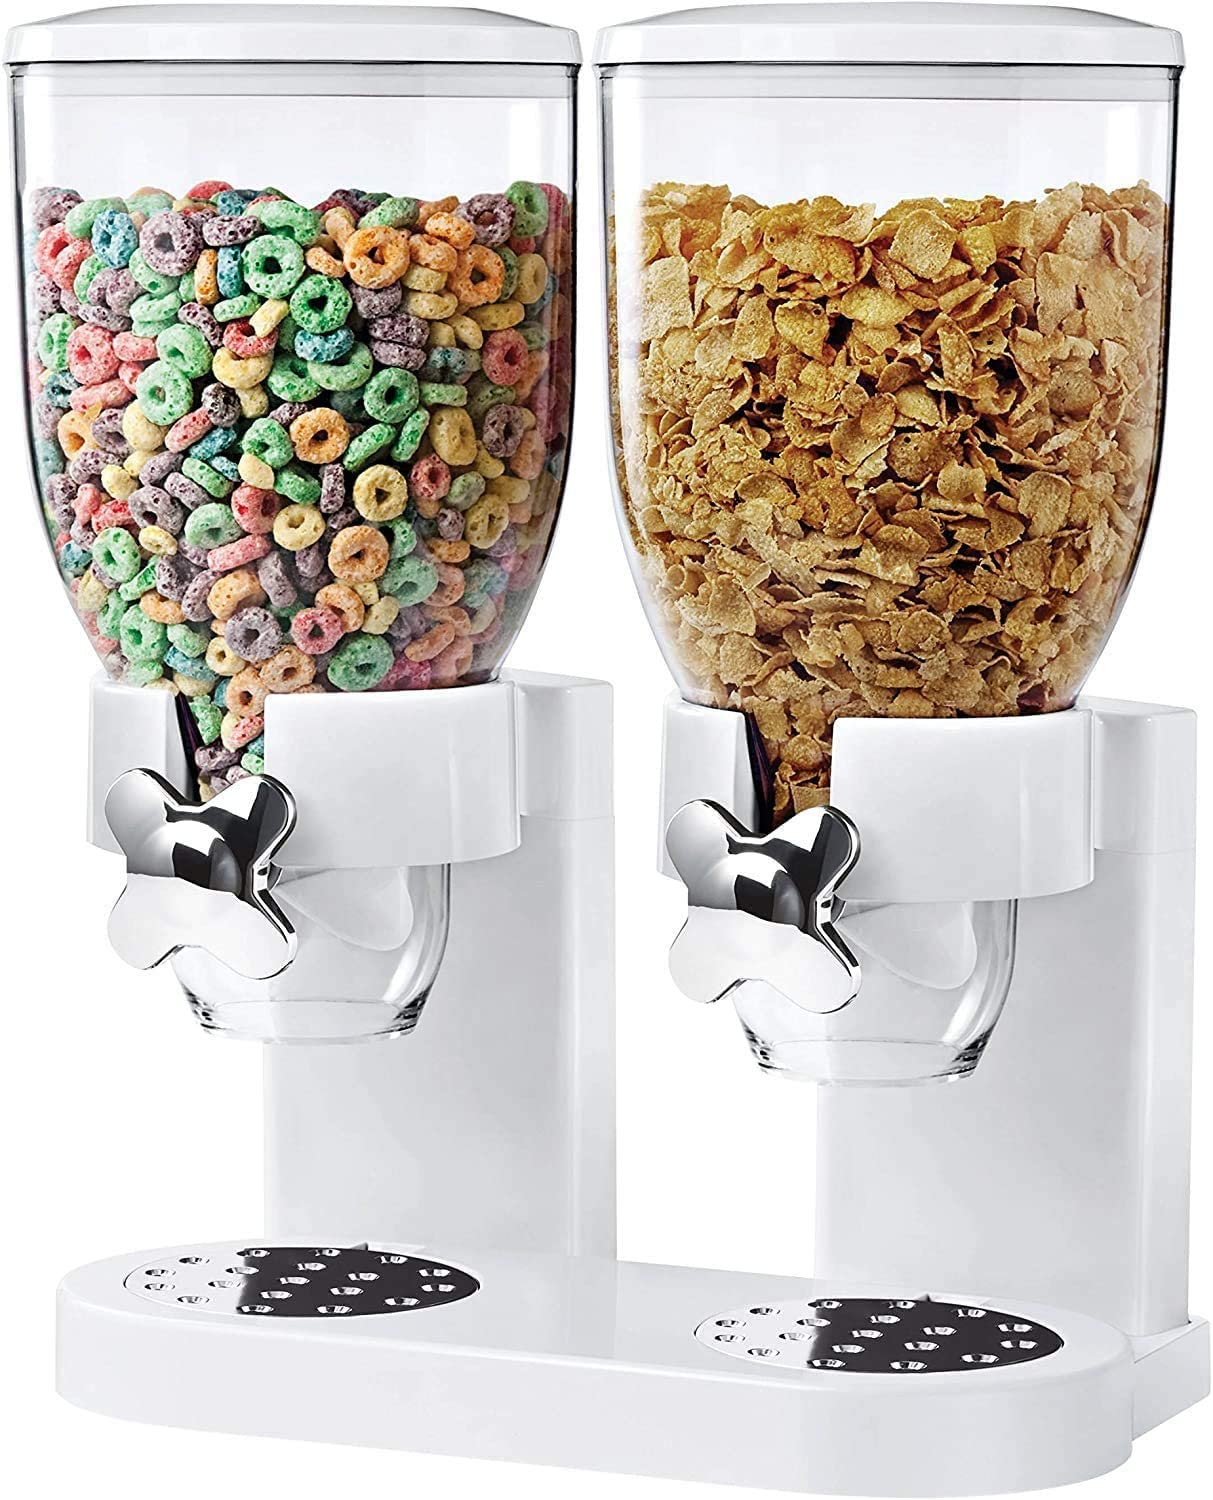 Dry Food and Cereal Dispenser, Double Food Storage Container, Double Chamber Dual Control Household Kitchen Storage Bottles (White-Dual)